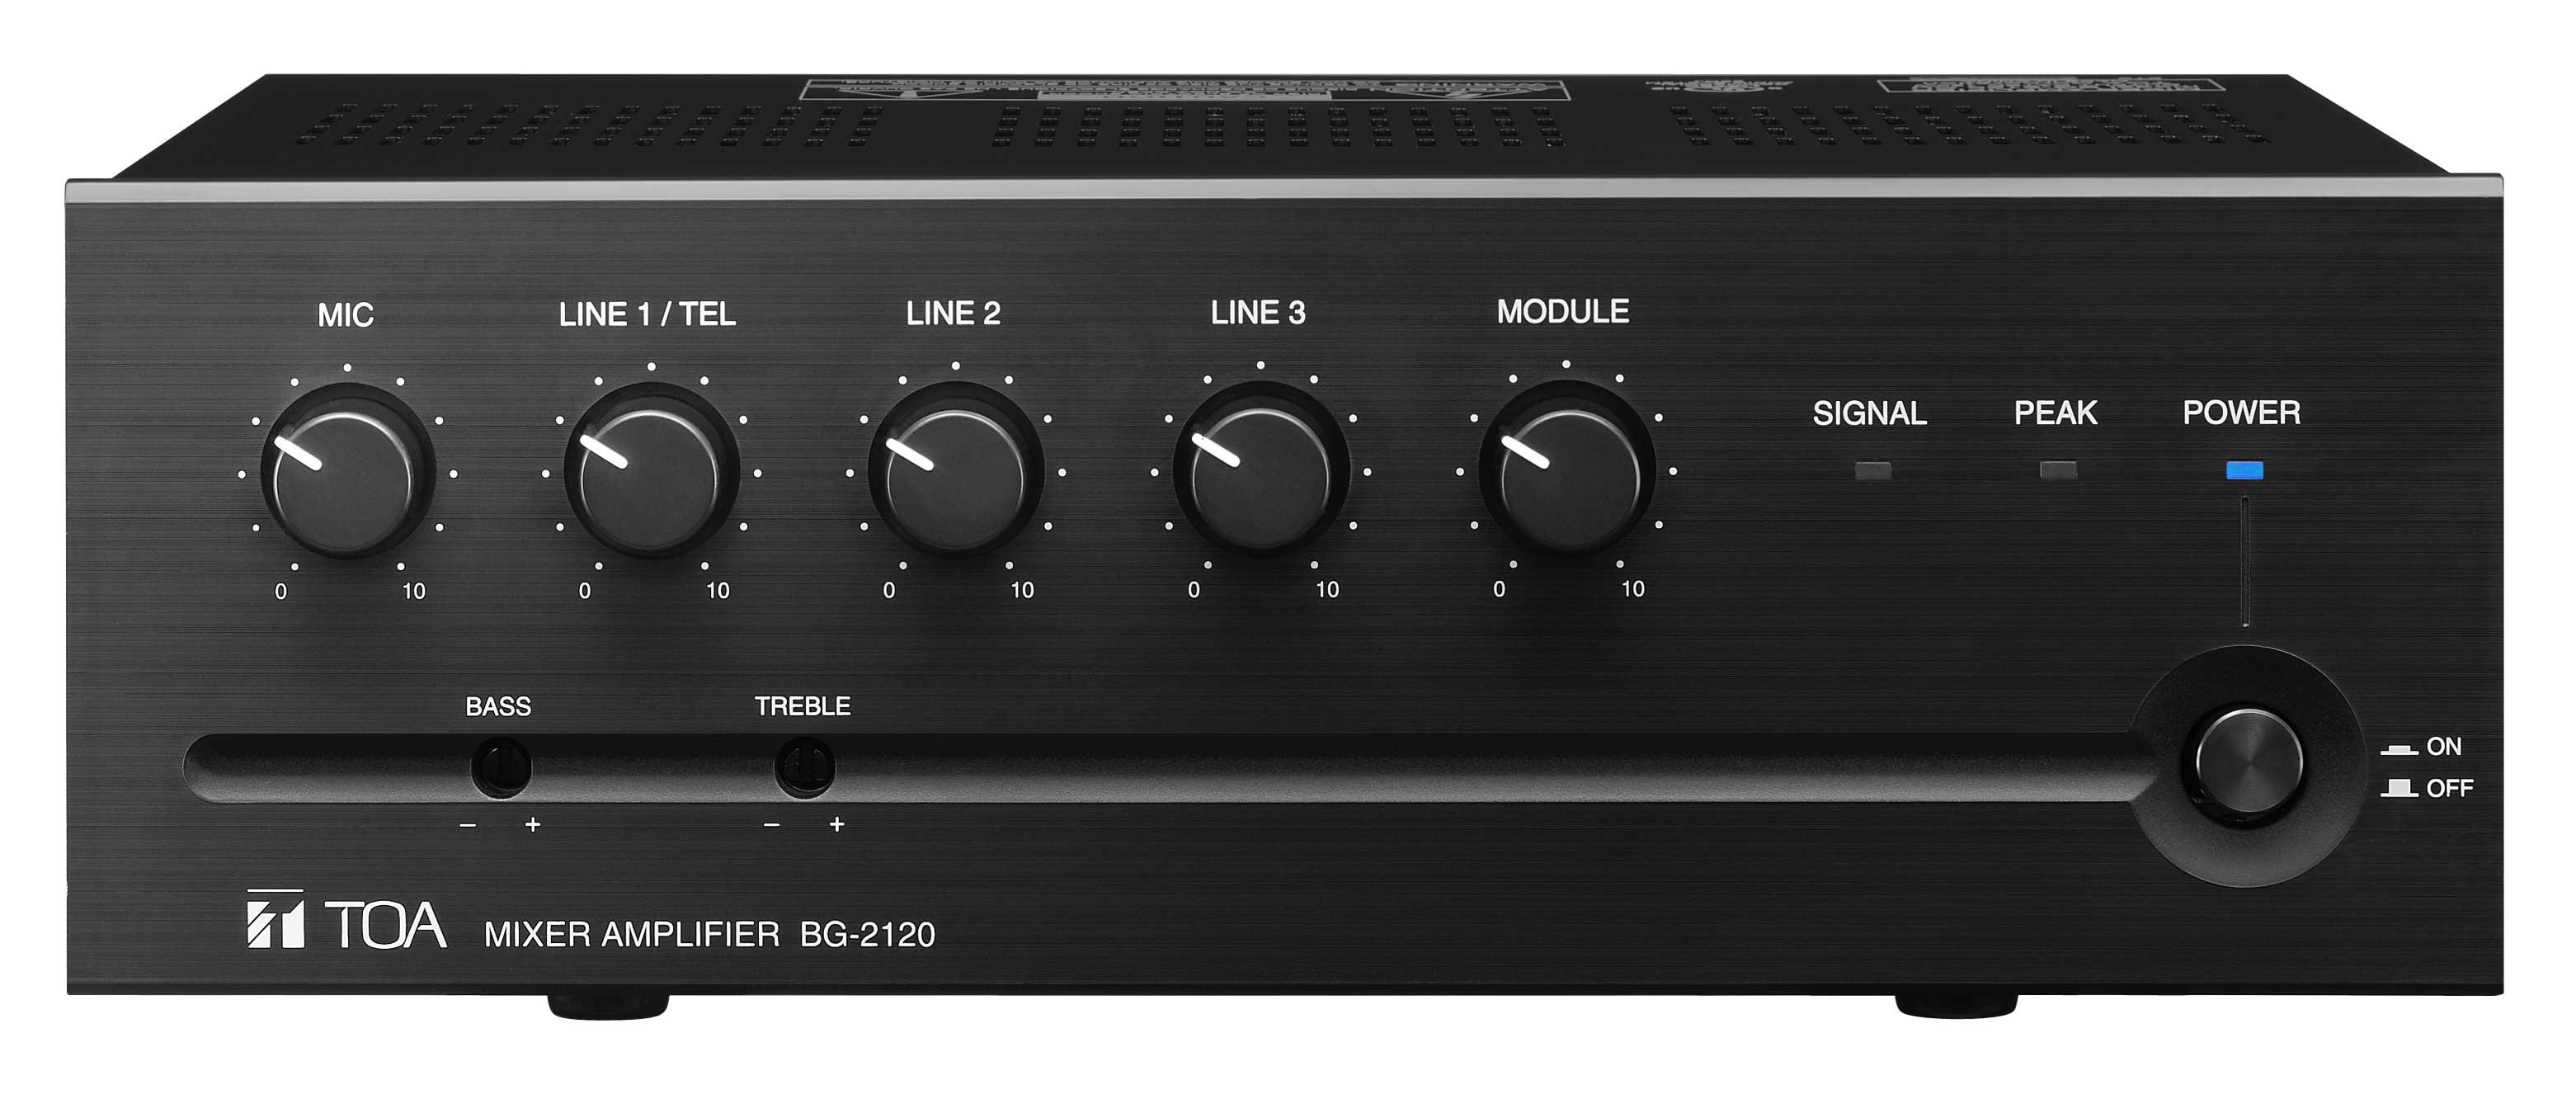 toa bg2120 5 channel mixer and power amplifier 120w full compass systems. Black Bedroom Furniture Sets. Home Design Ideas